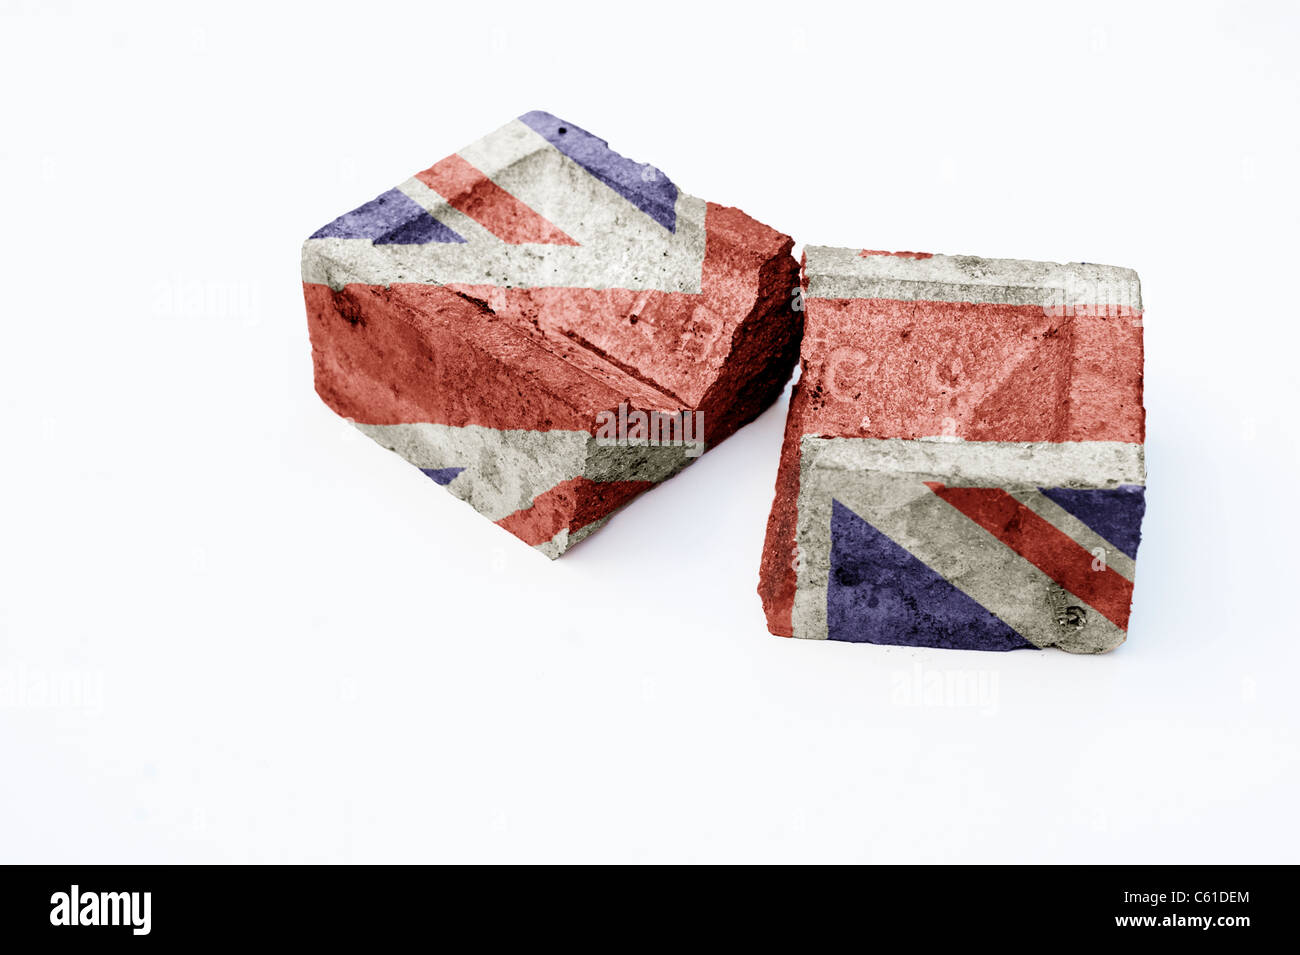 Union Jack on a broken brick on white background . Concept representing the foundation of a broken society - Stock Image